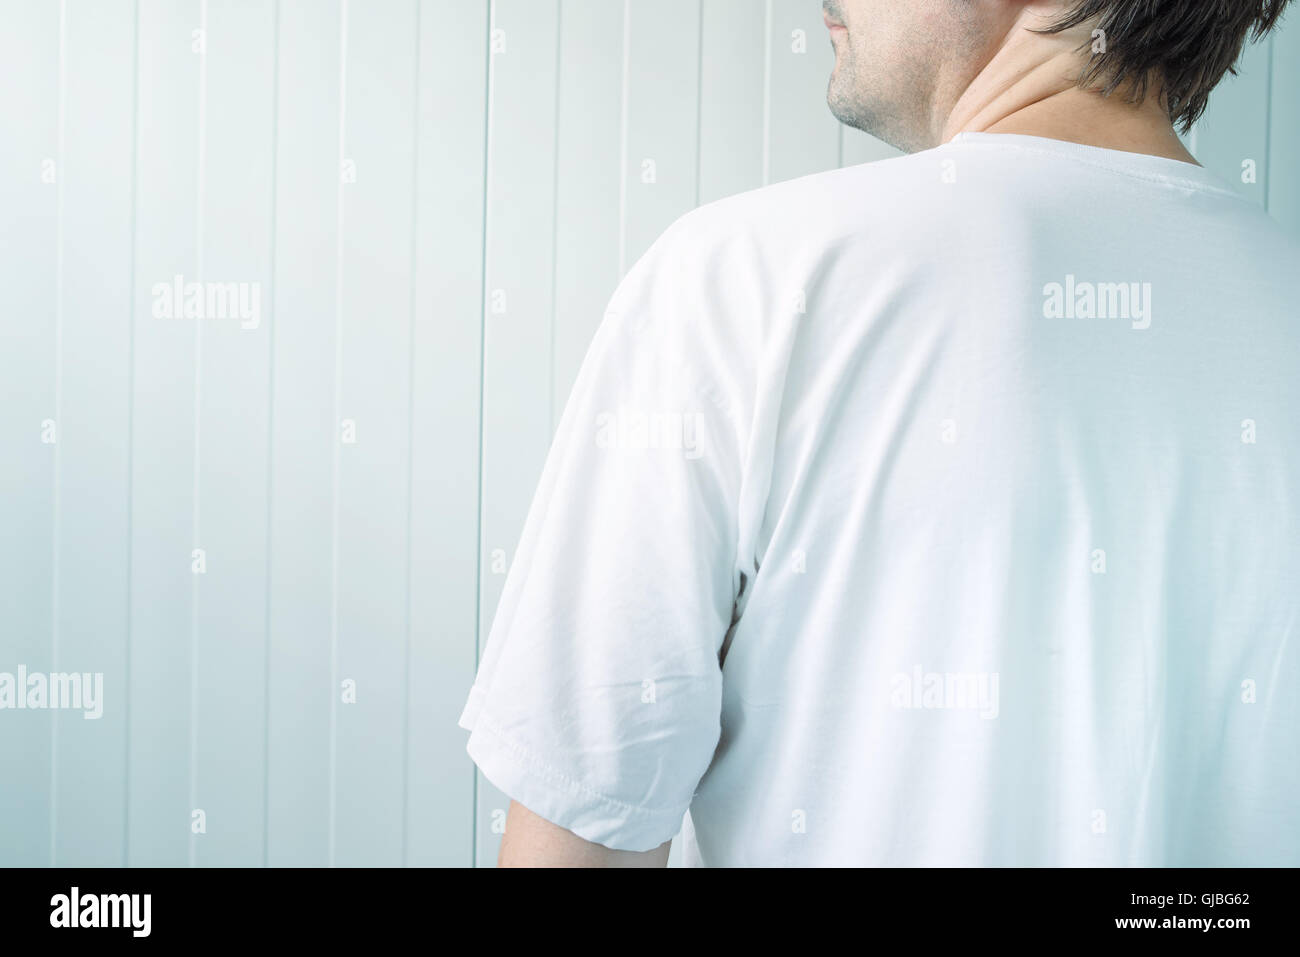 Man in white shirt from behind, blank male t-shirt as copy space for mock up graphic design or text - Stock Image